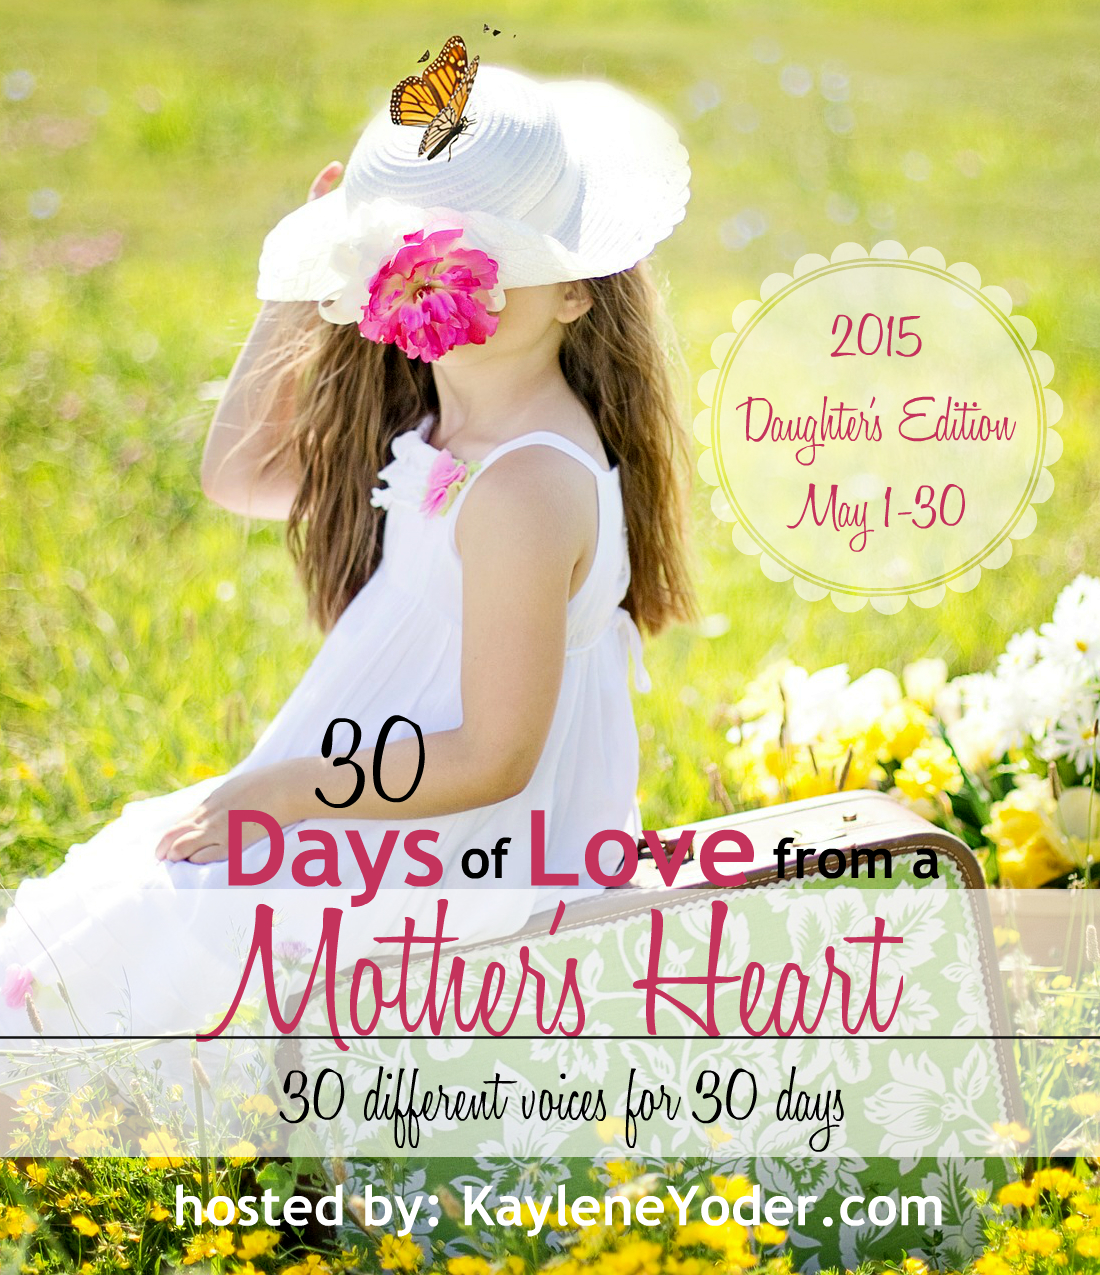 mothers heart 3